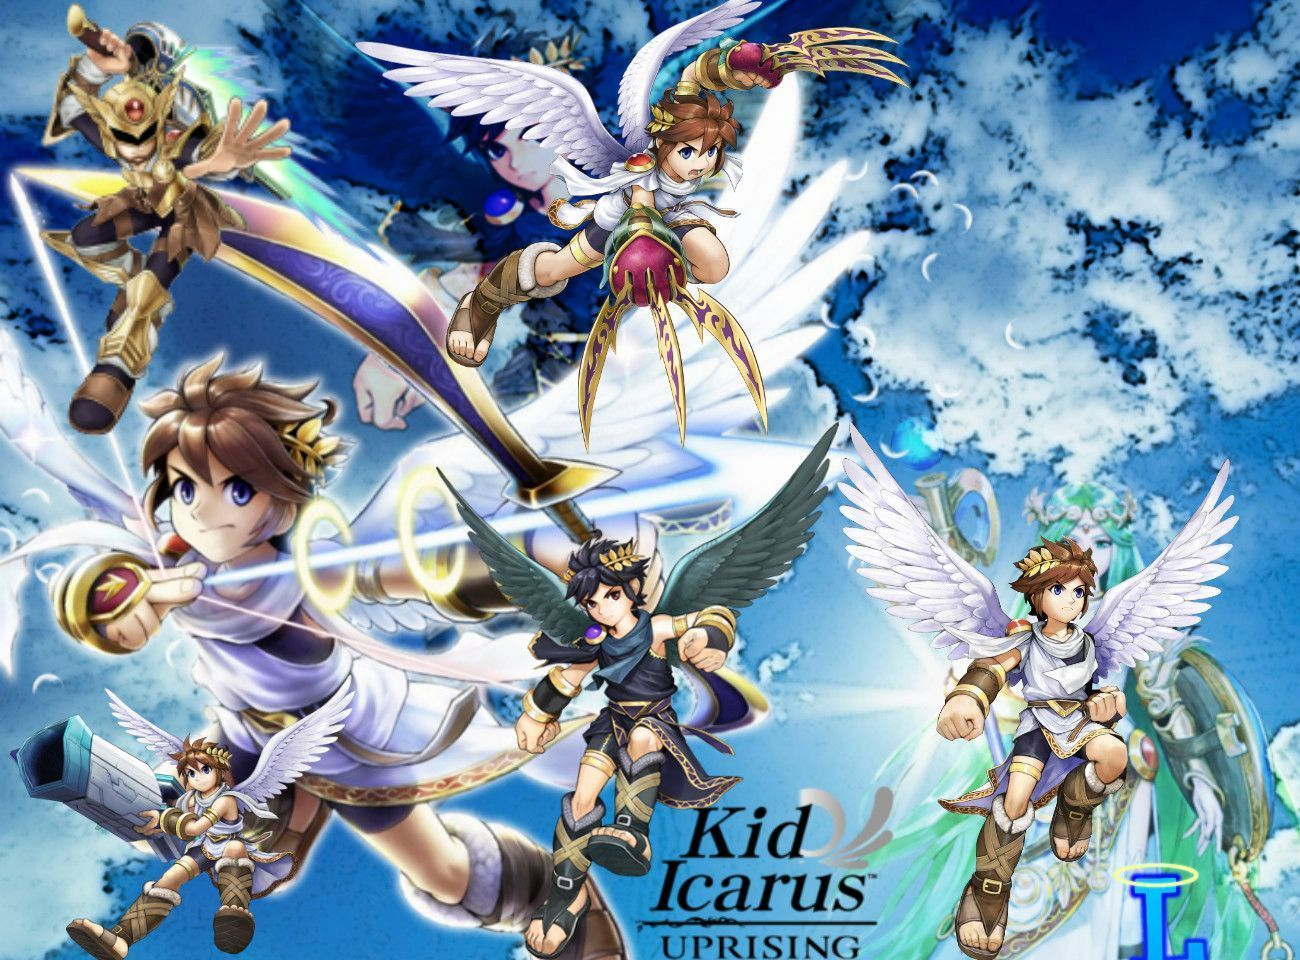 Pit Kid Icarus Wallpaper Viewing Gallery Kid Icarus